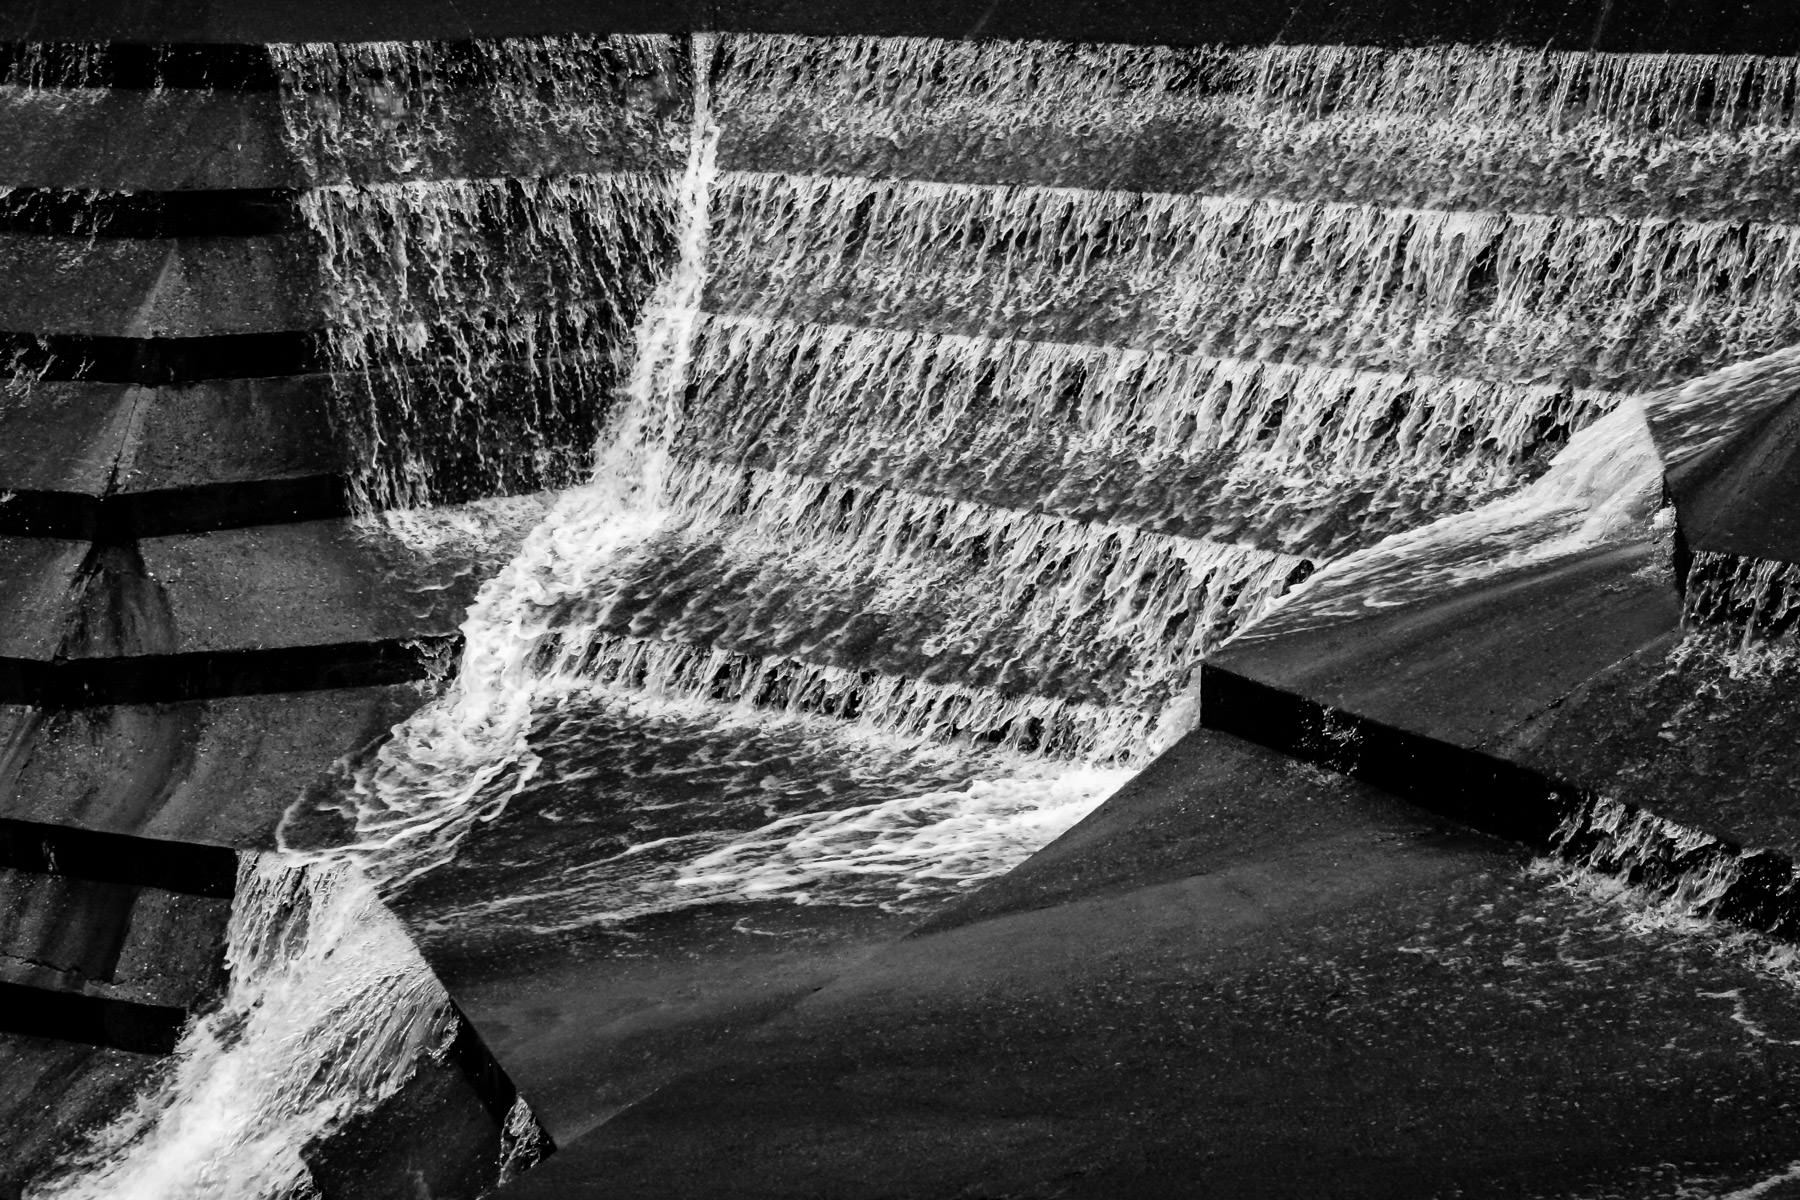 Water rushes through a portion of the Fort Worth Water Gardens, Fort Worth, Texas.